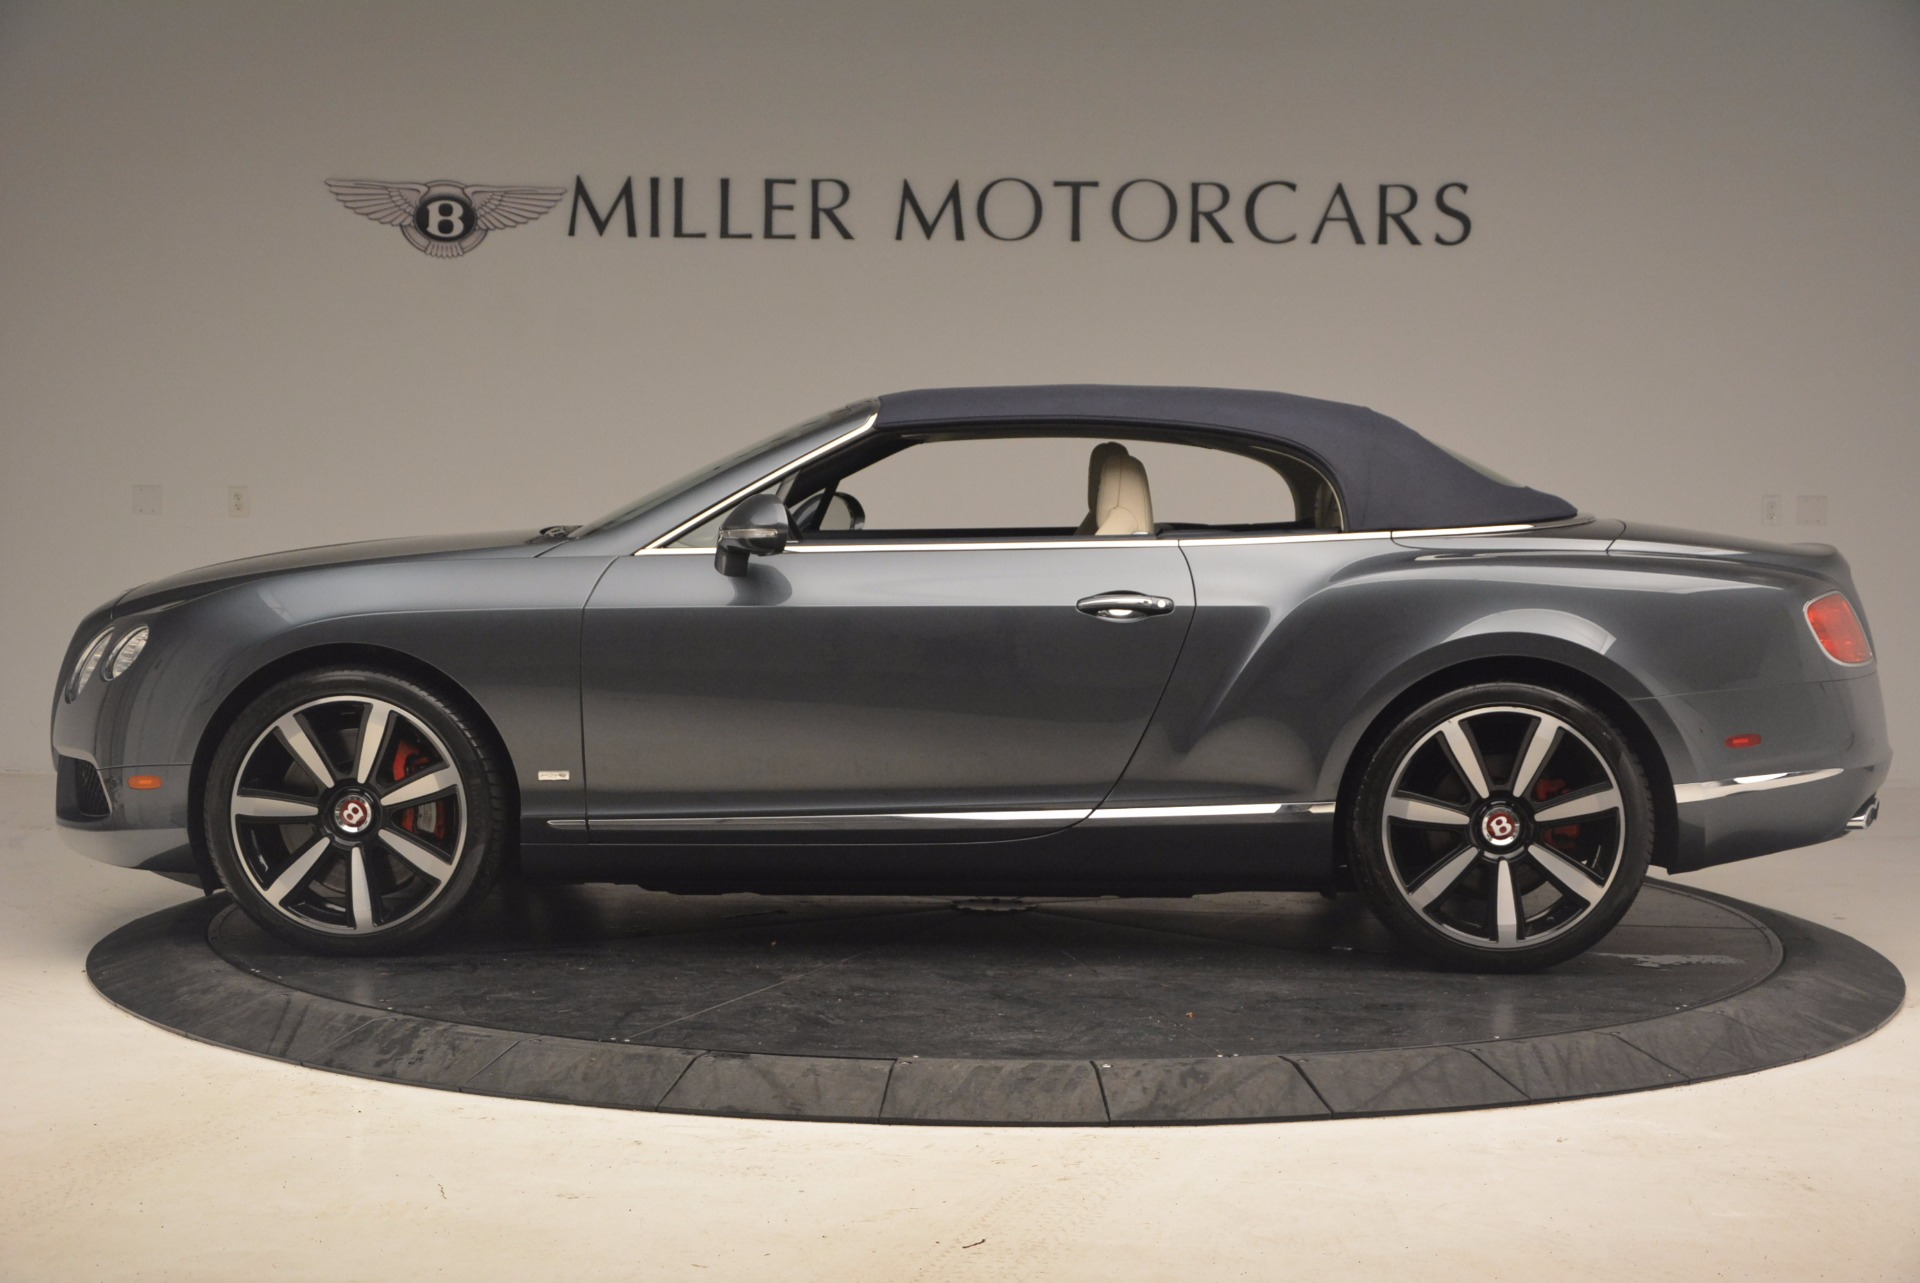 Used 2013 Bentley Continental GT V8 Le Mans Edition, 1 of 48 For Sale In Greenwich, CT. Alfa Romeo of Greenwich, 7226 1288_p16